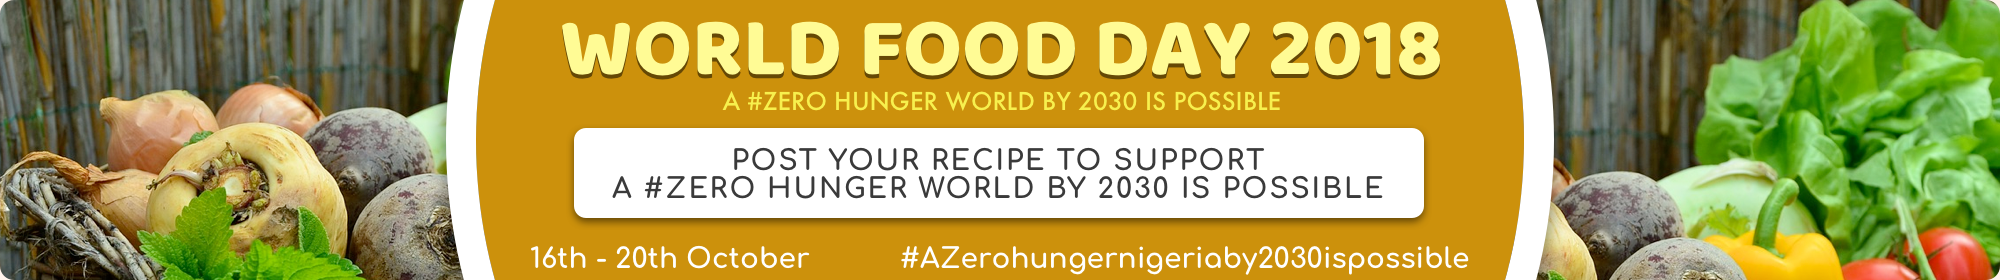 World Food Day Campaign